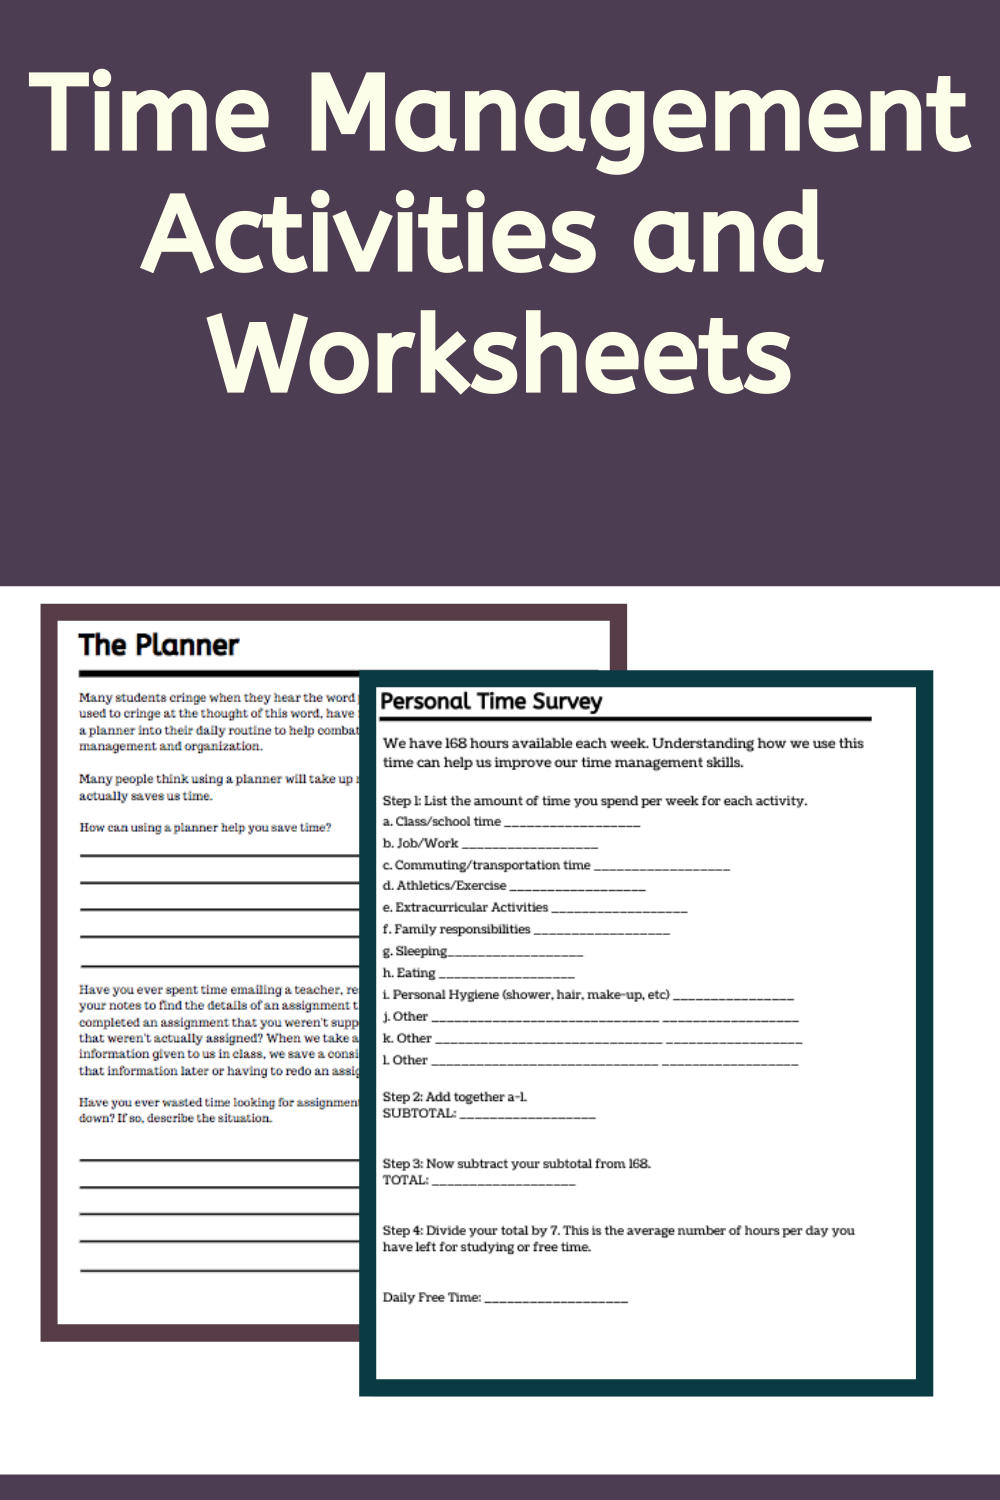 Time Management Activities And Worksheets For Middle And High School Students Time Management Activities Time Management Time Management Skills